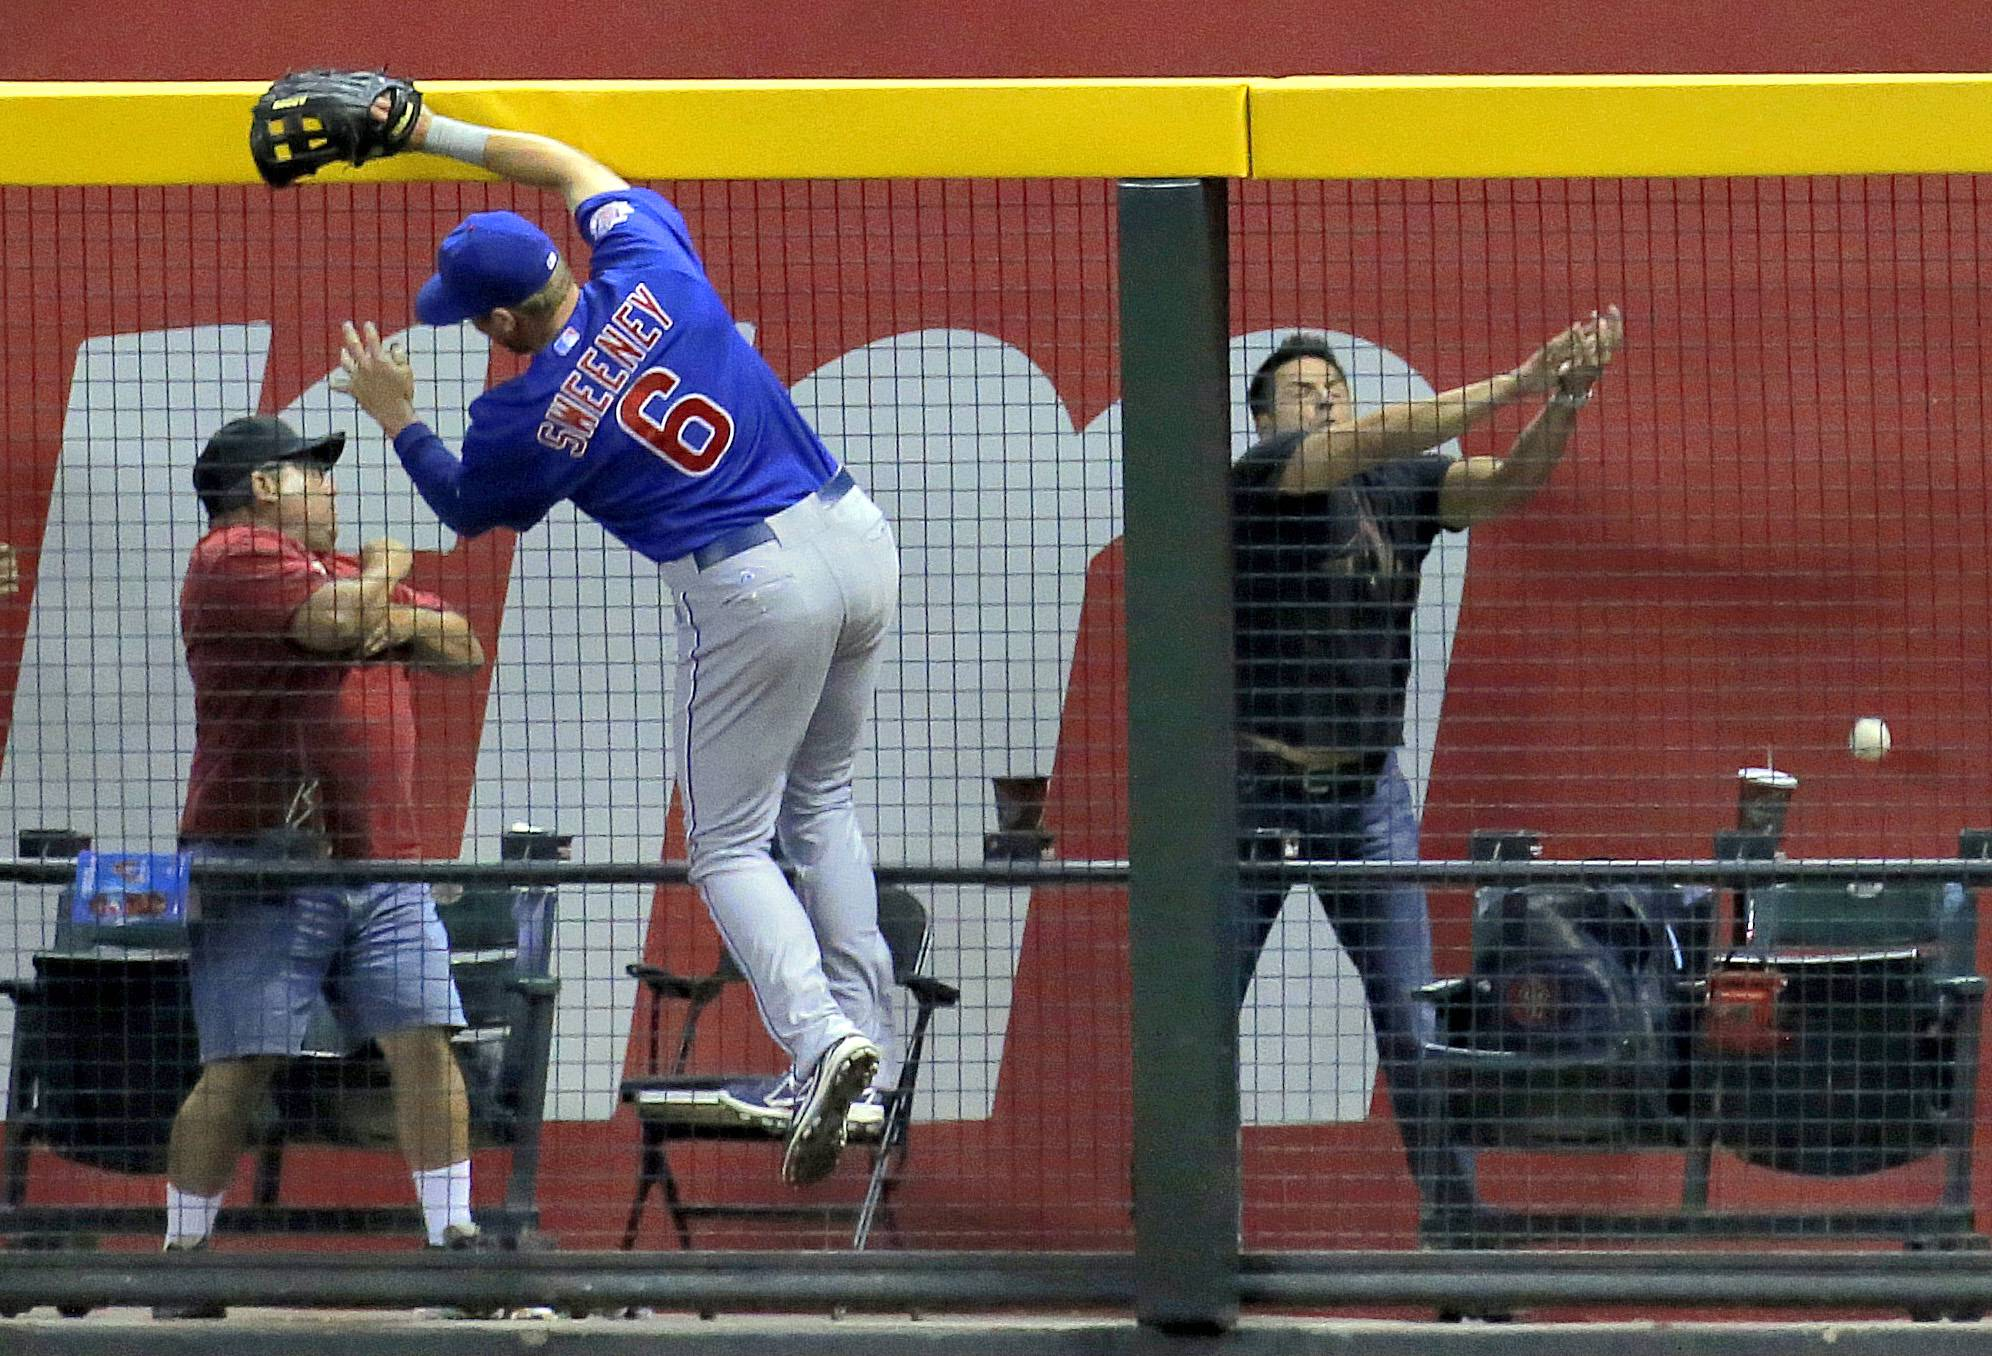 The Cubs' Ryan Sweeney can't catch a home run hit by the Diamondbacks' Paul Goldschmidt in the sixth inning Friday in Phoenix.